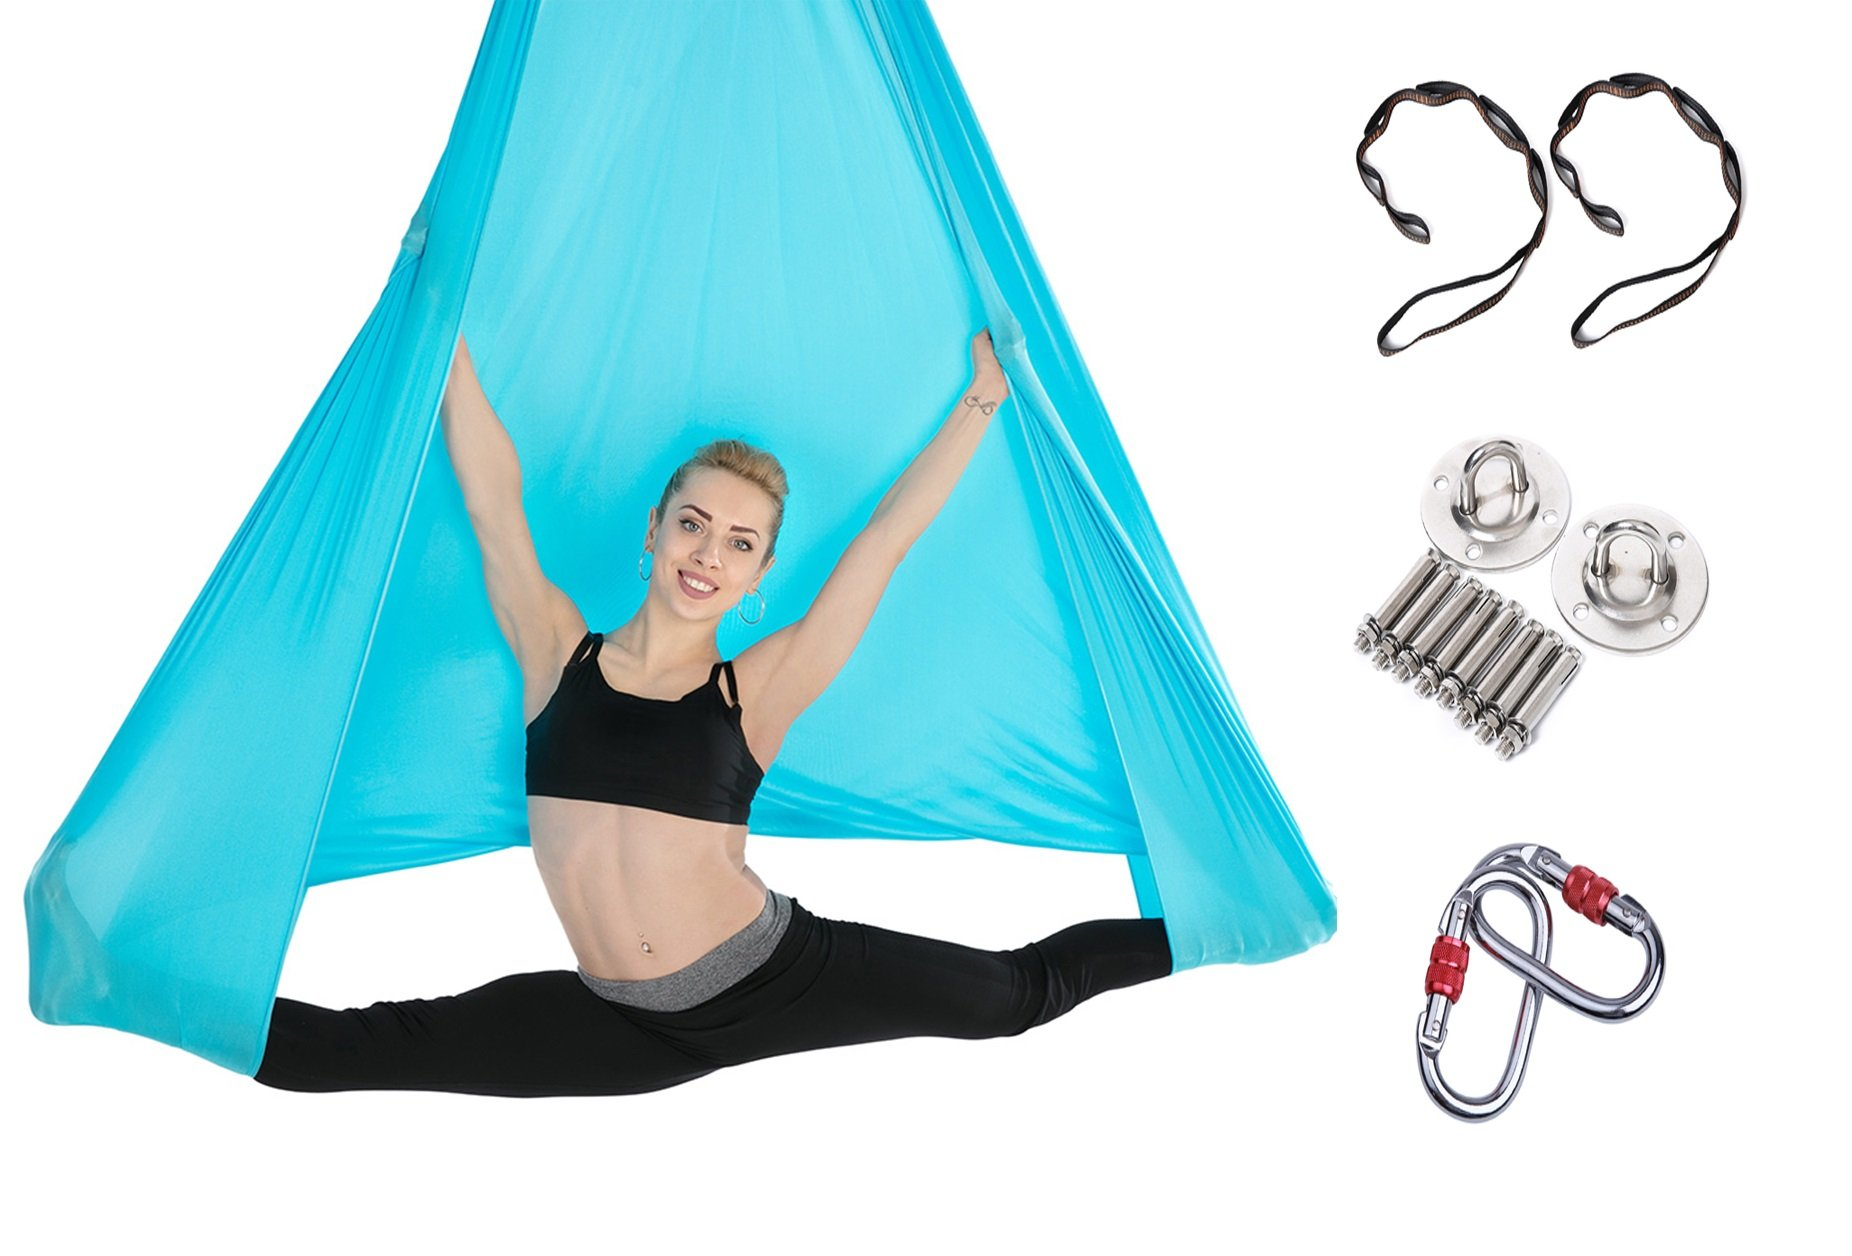 Tofern Aerial Yoga Hammock Kit 5.5 Yards Antigravity Trapeze Inversion Exercise Home Indoor Outdoor Yoga Silk Swing Sling Set with Hardware Ceiling Hooks Bolts 2 Extension Straps, Sky Blue